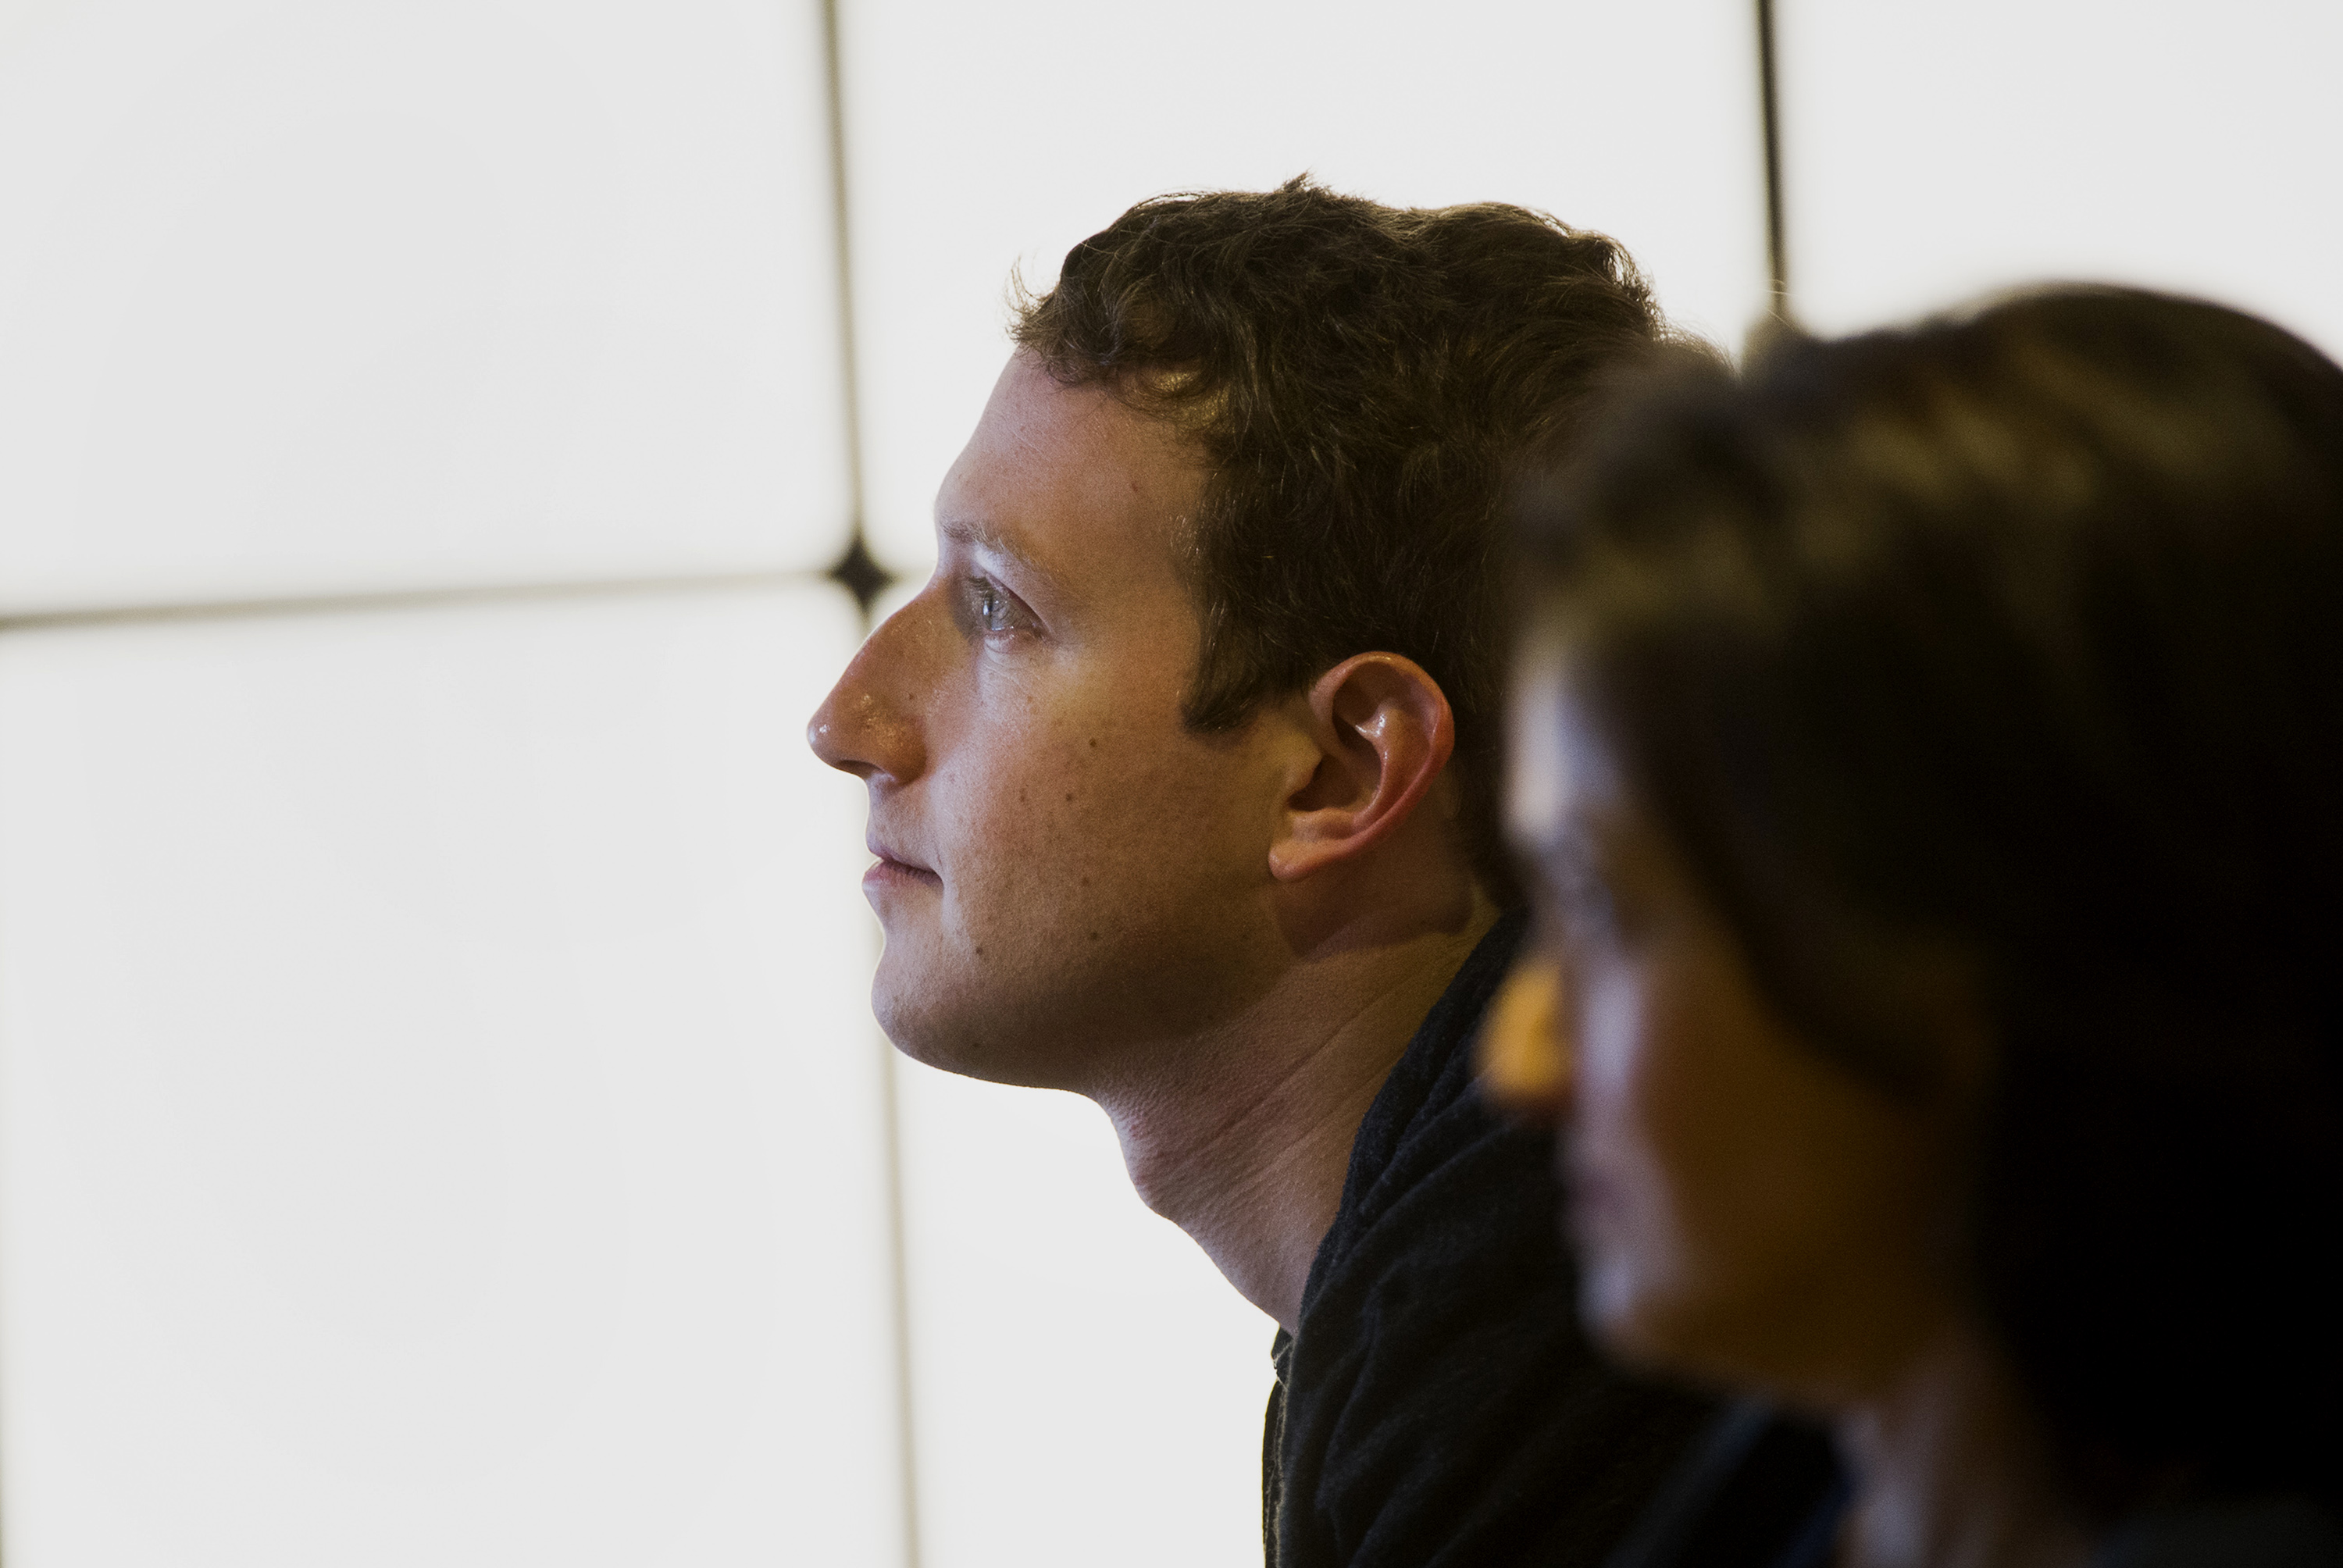 Facebook CEO Mark Zuckerberg and COO Sheryl Sandberg watch a presentation at the company's headquarters in Menlo Park, California.